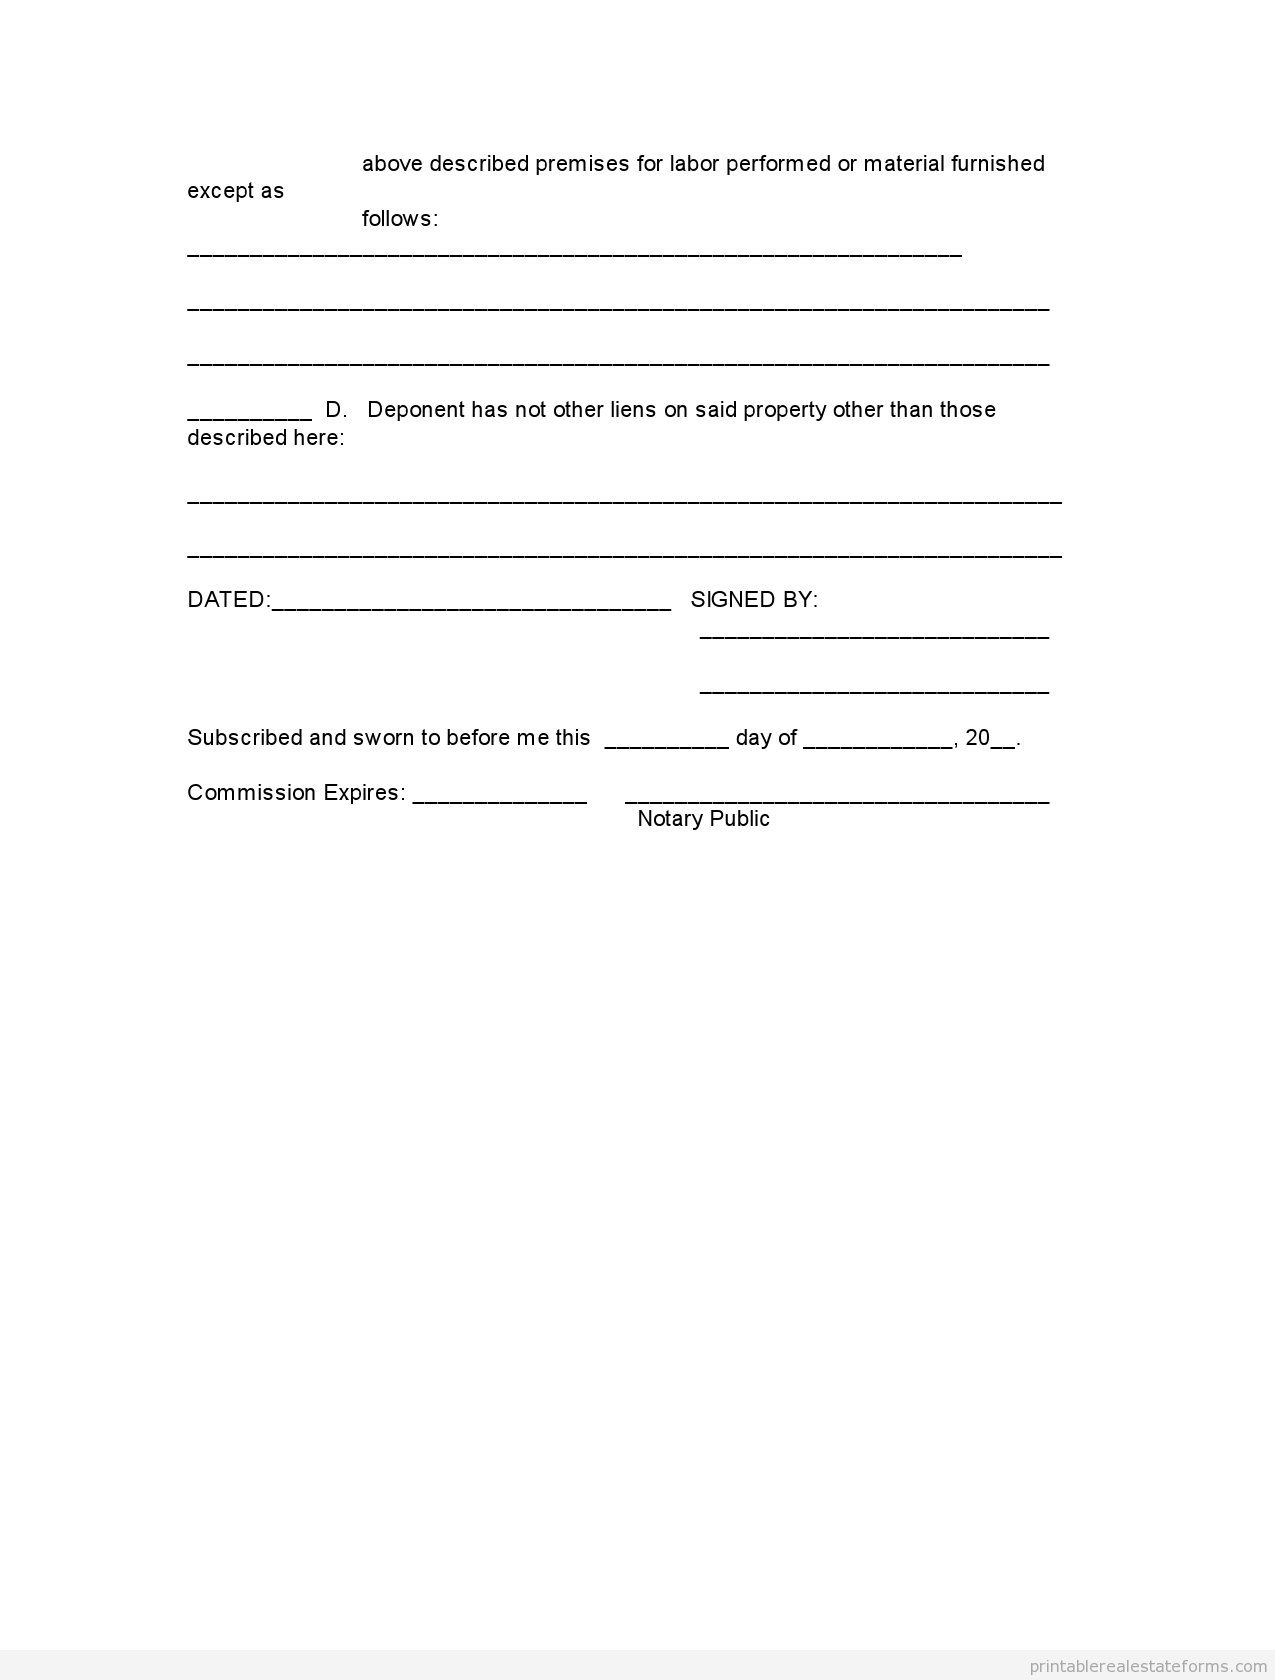 contract to sell on land contract printable real estate get high quality printable affidavit of ownership wholesaling form editable sample blank word template ready to fill out print and sign more here